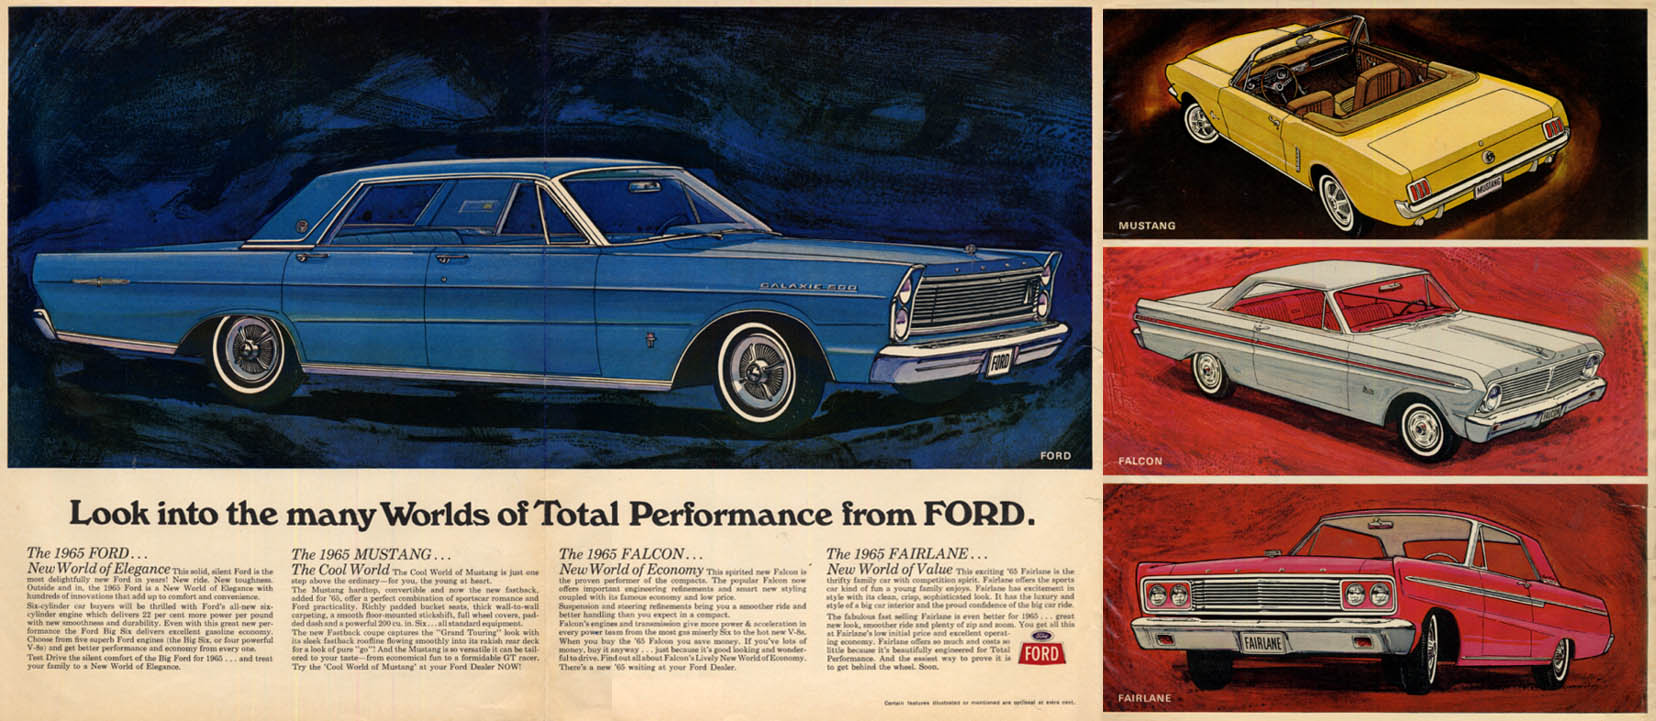 Image for Total Performance from Ford Galaxie 500 Mustang Falcon Fairlane ad 1965 Canada